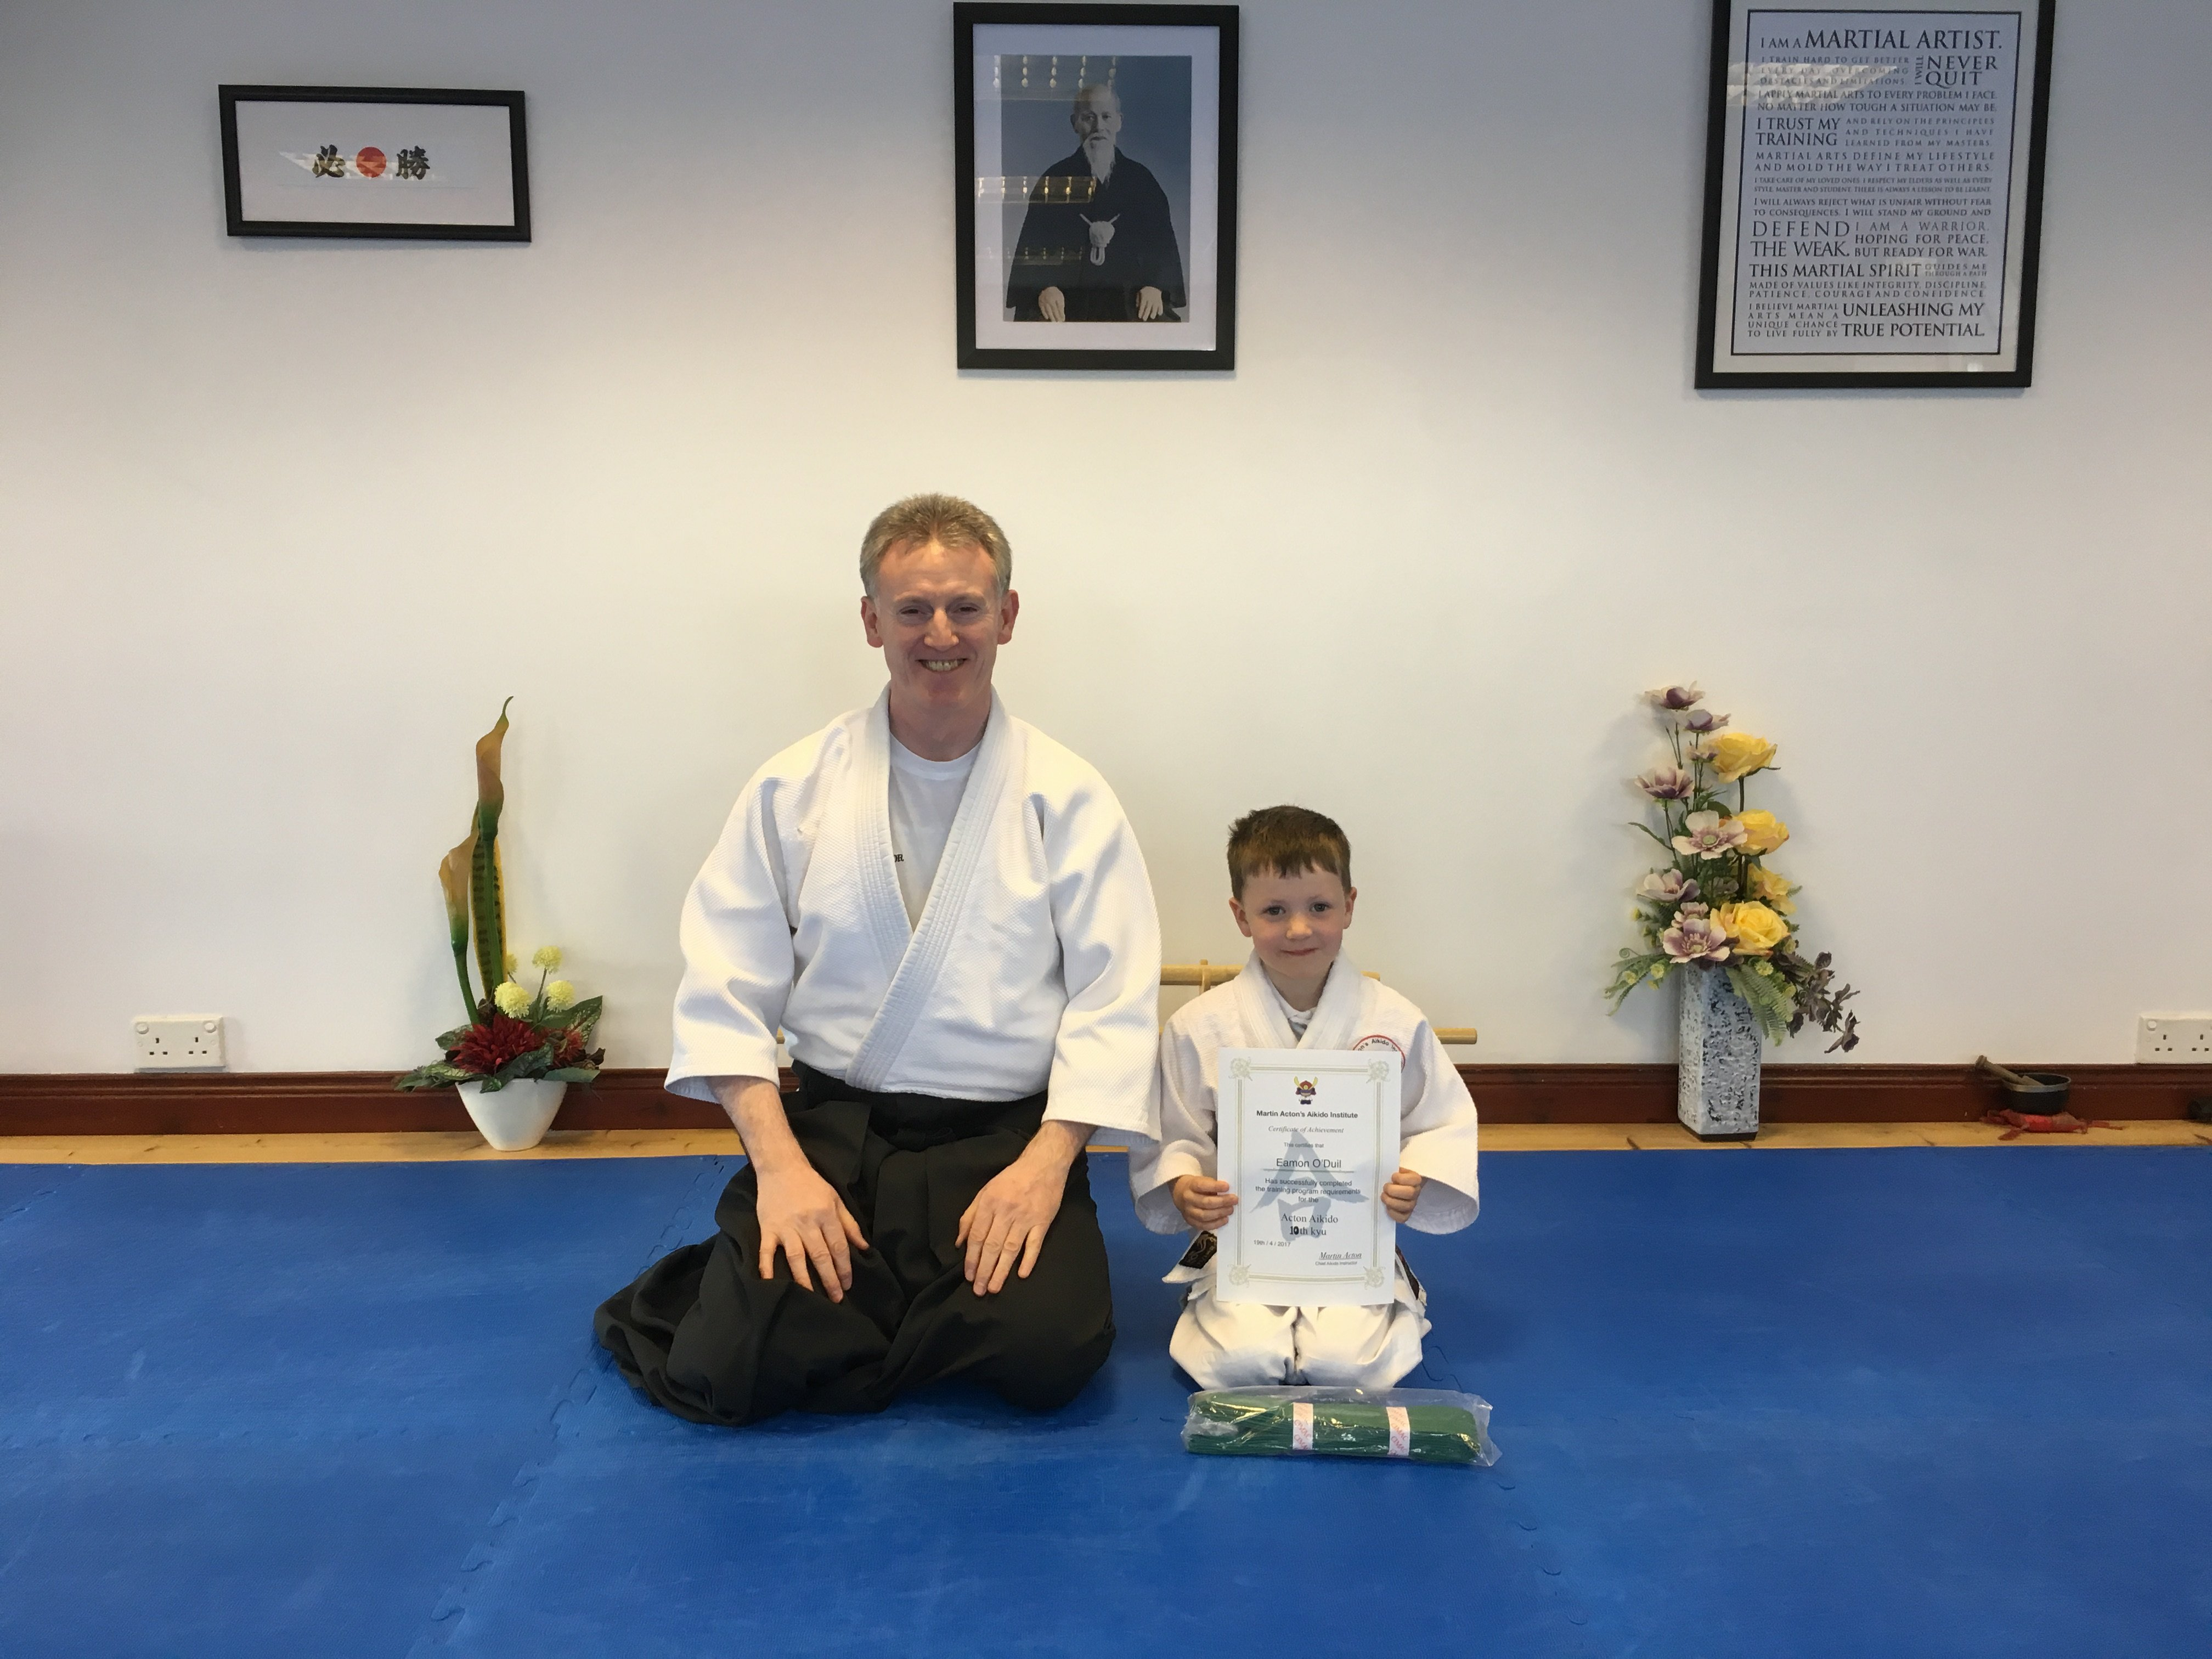 Eamon O'Duil receiving his Aikido 10th kyu  certification with Martin Acton sensei on 19/4/17 at Martin Acton's Aikido Institute.